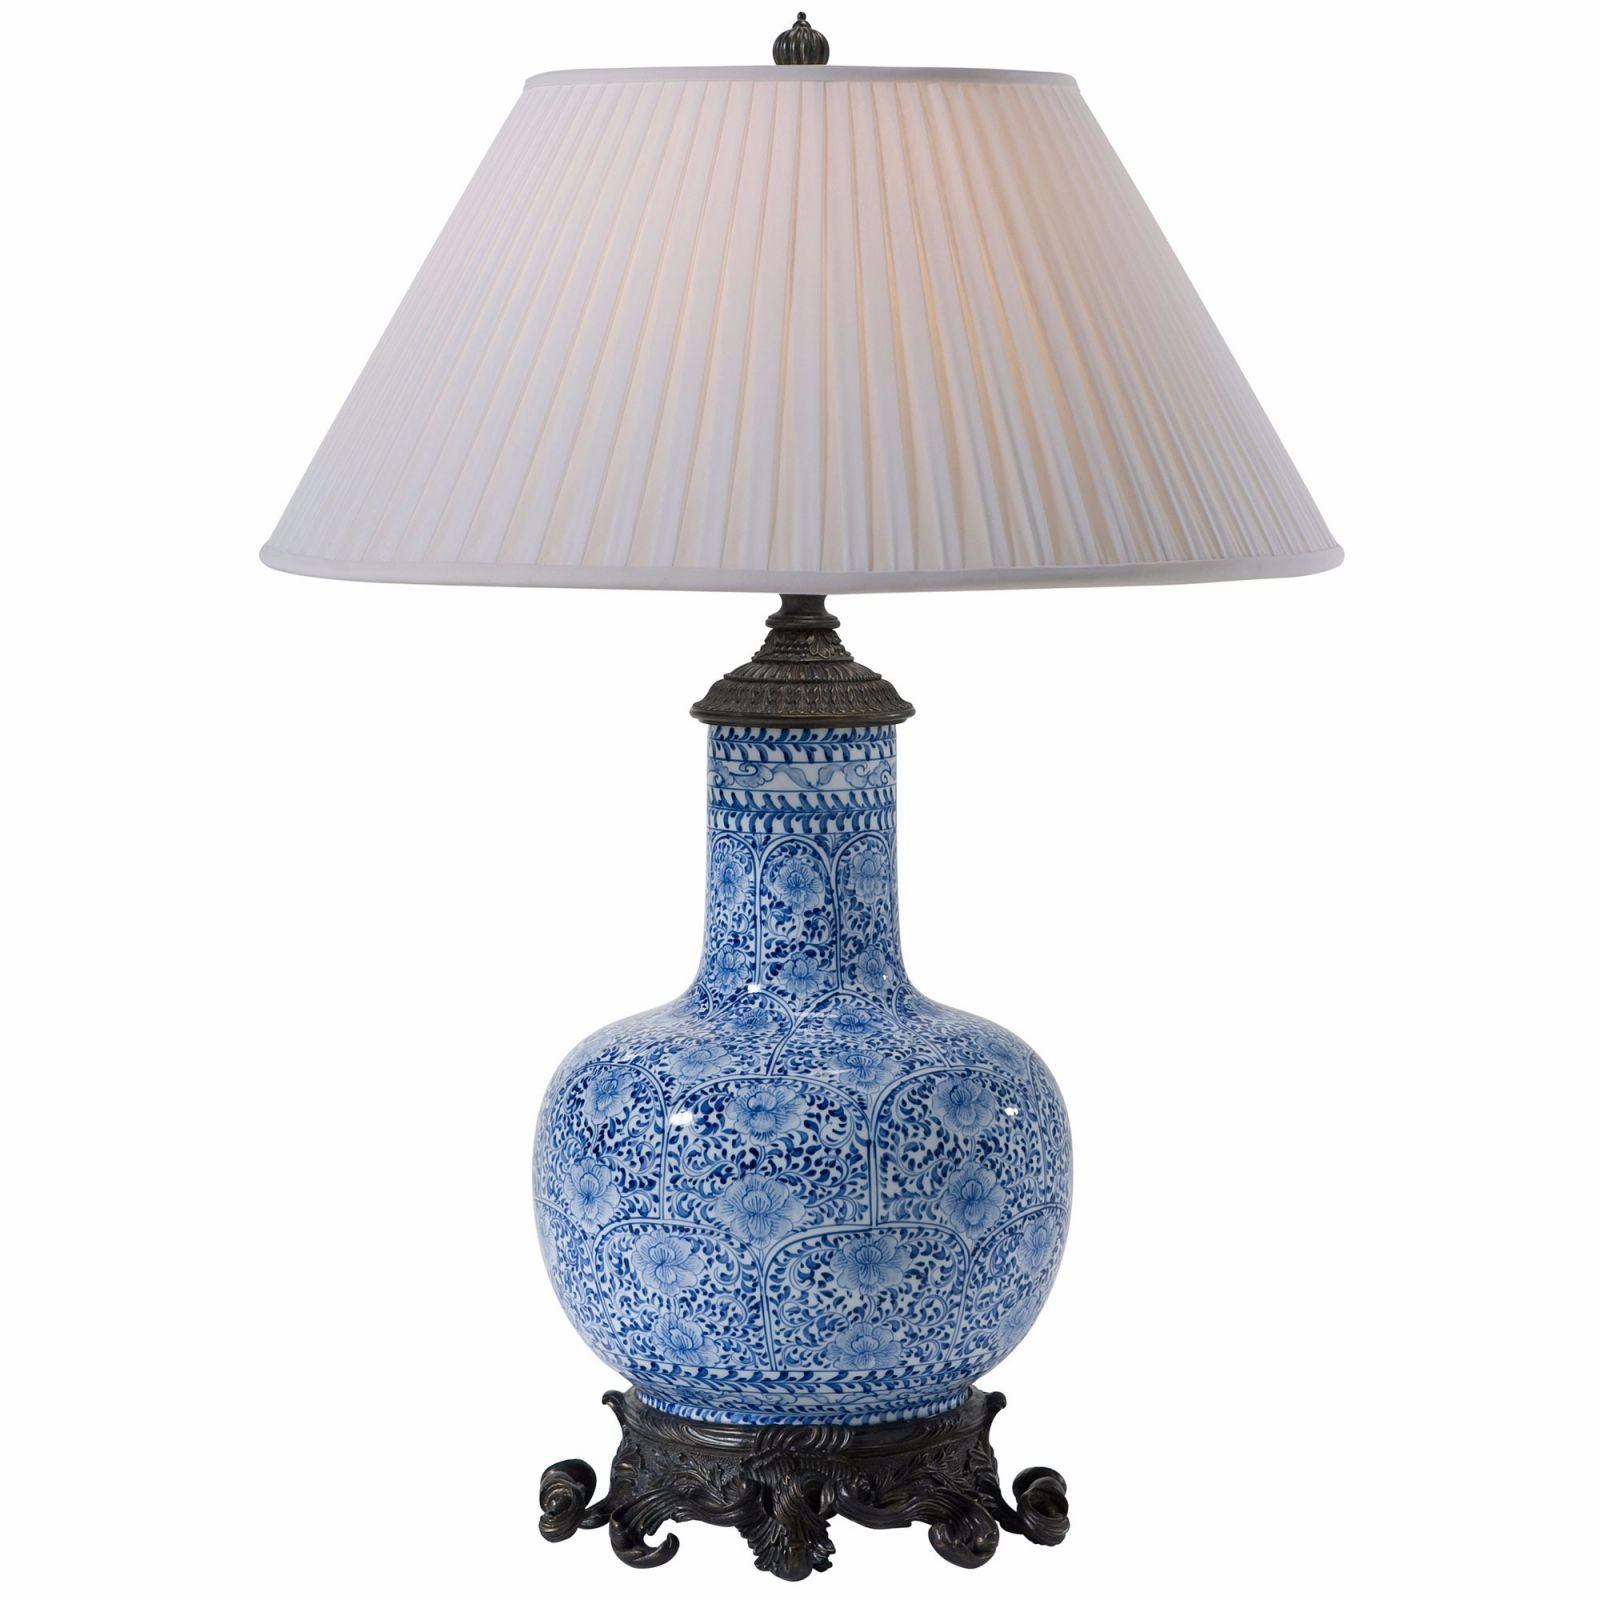 blue and white ceramic table lamp table lamps from brights of nettlebed. Black Bedroom Furniture Sets. Home Design Ideas